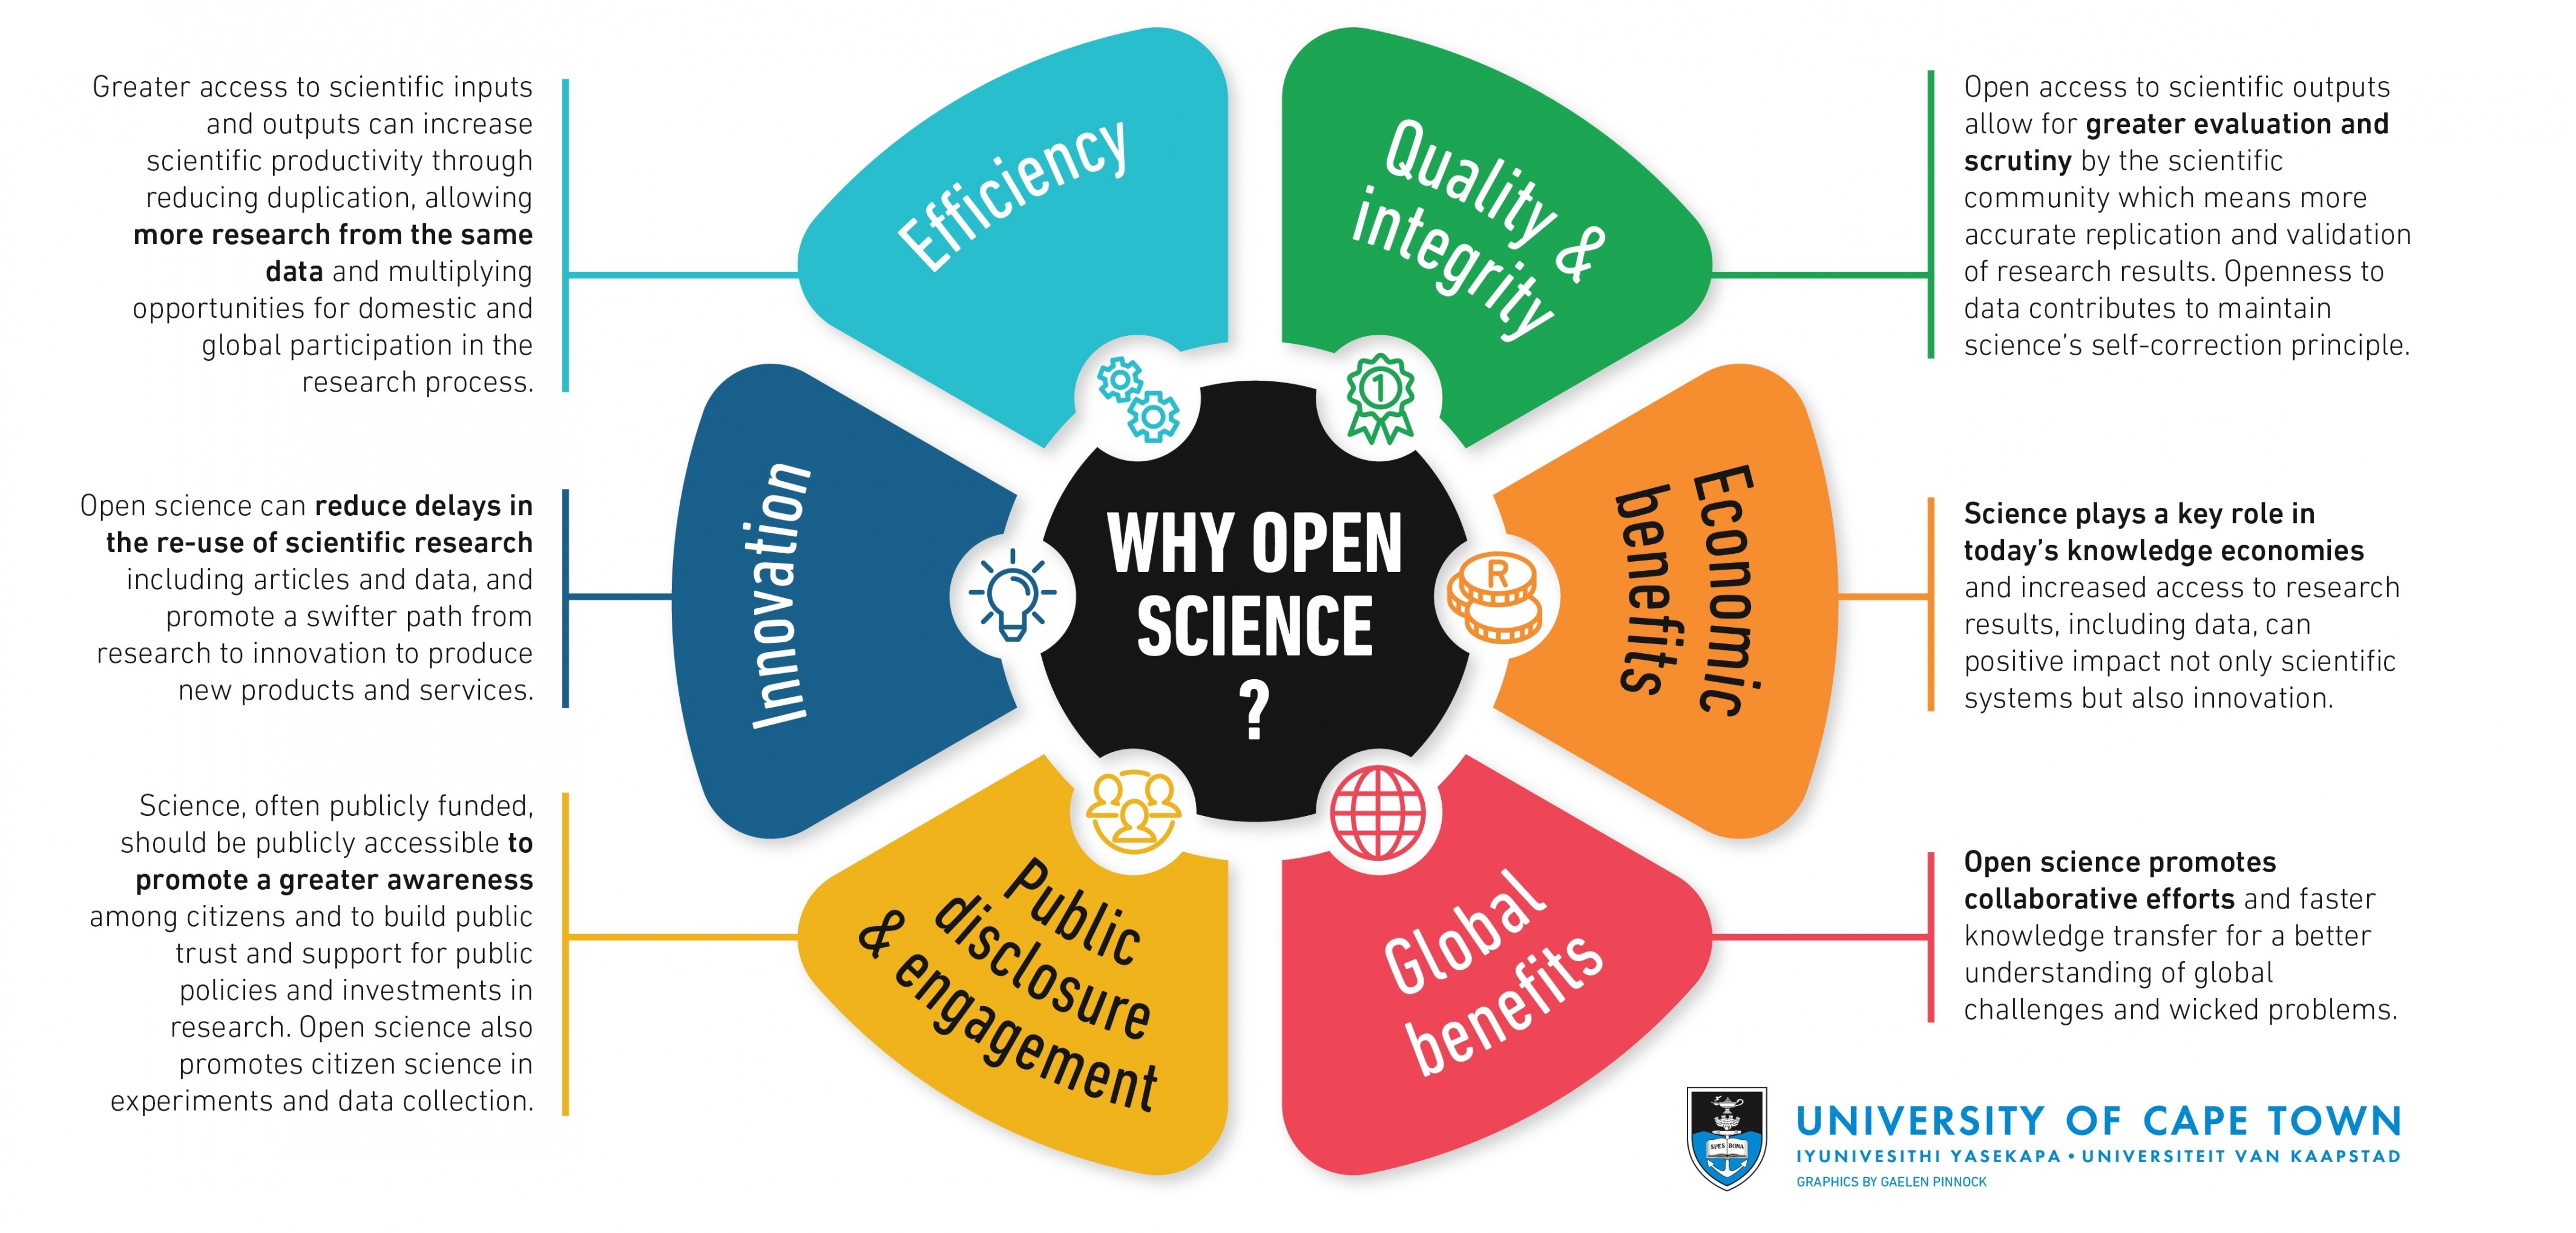 Why open science